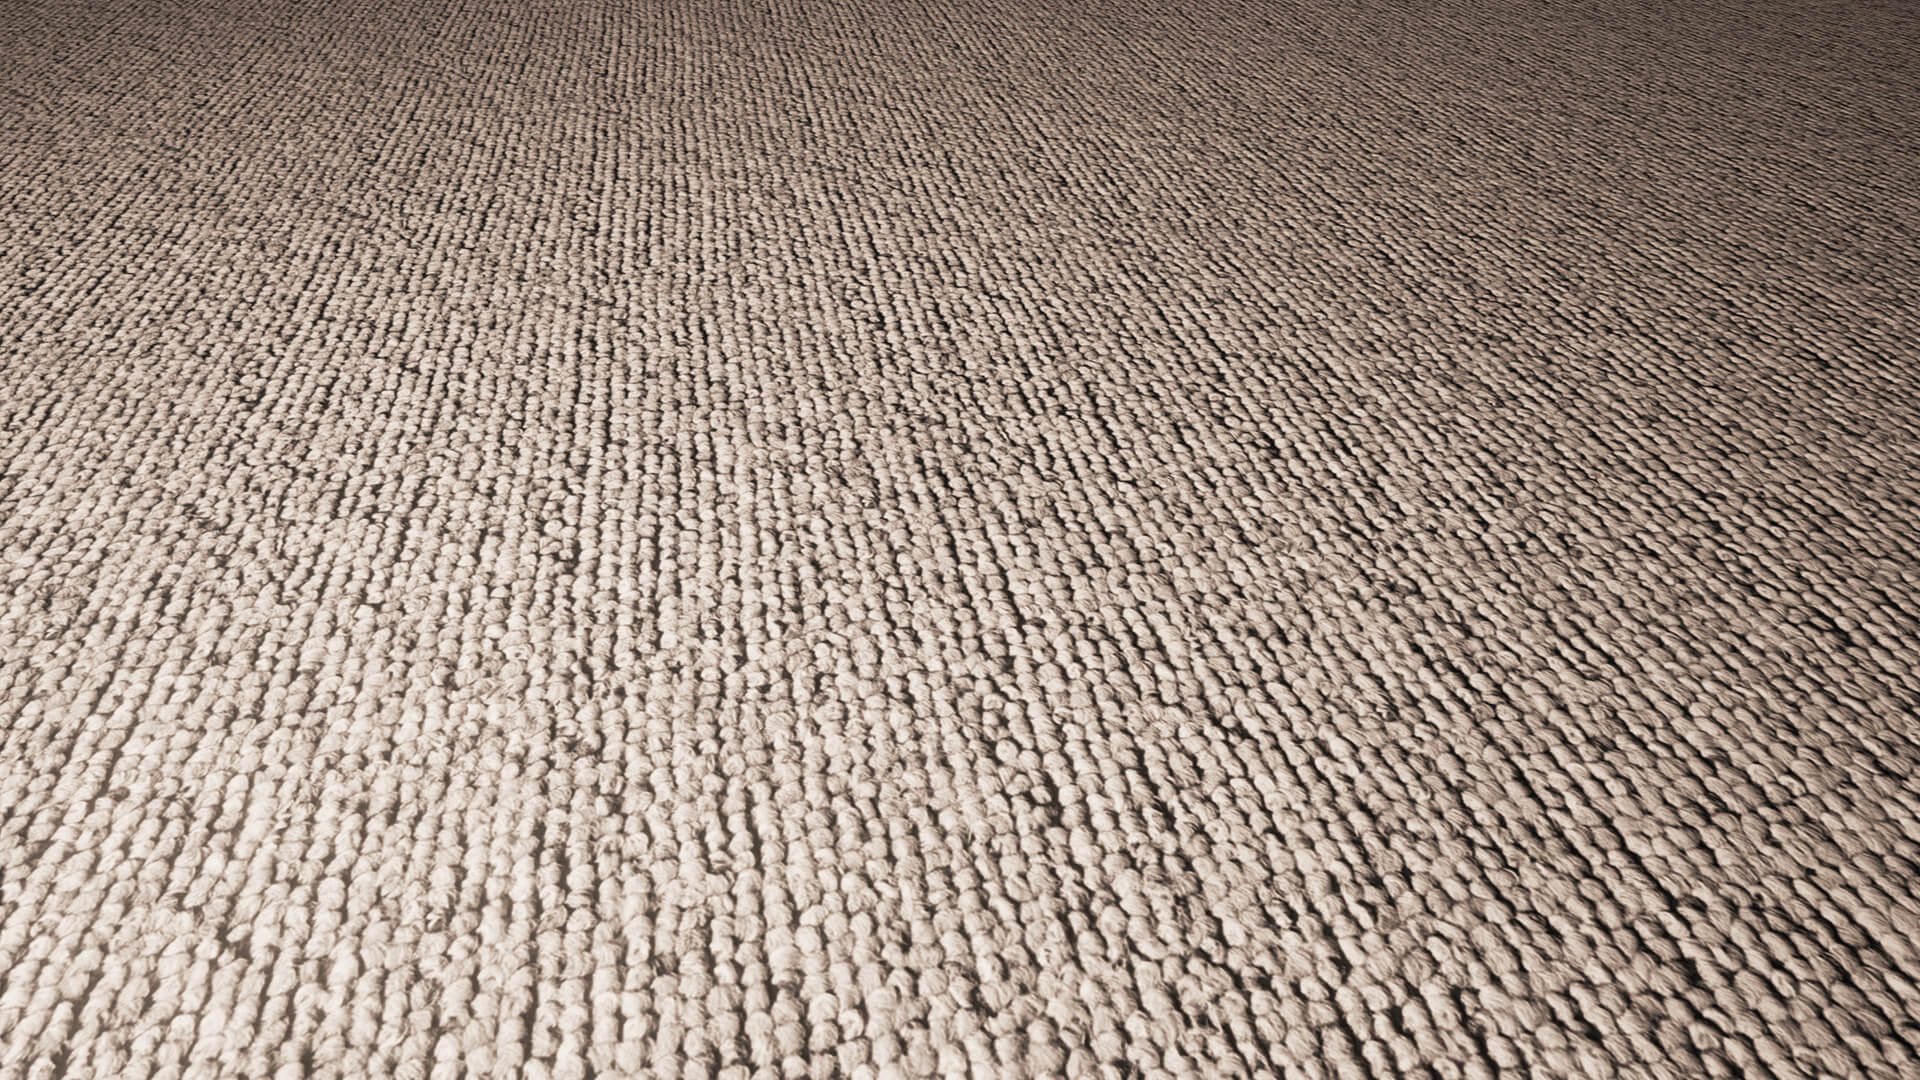 Carpet material ue4 carpet vidalondon for Best material for carpet